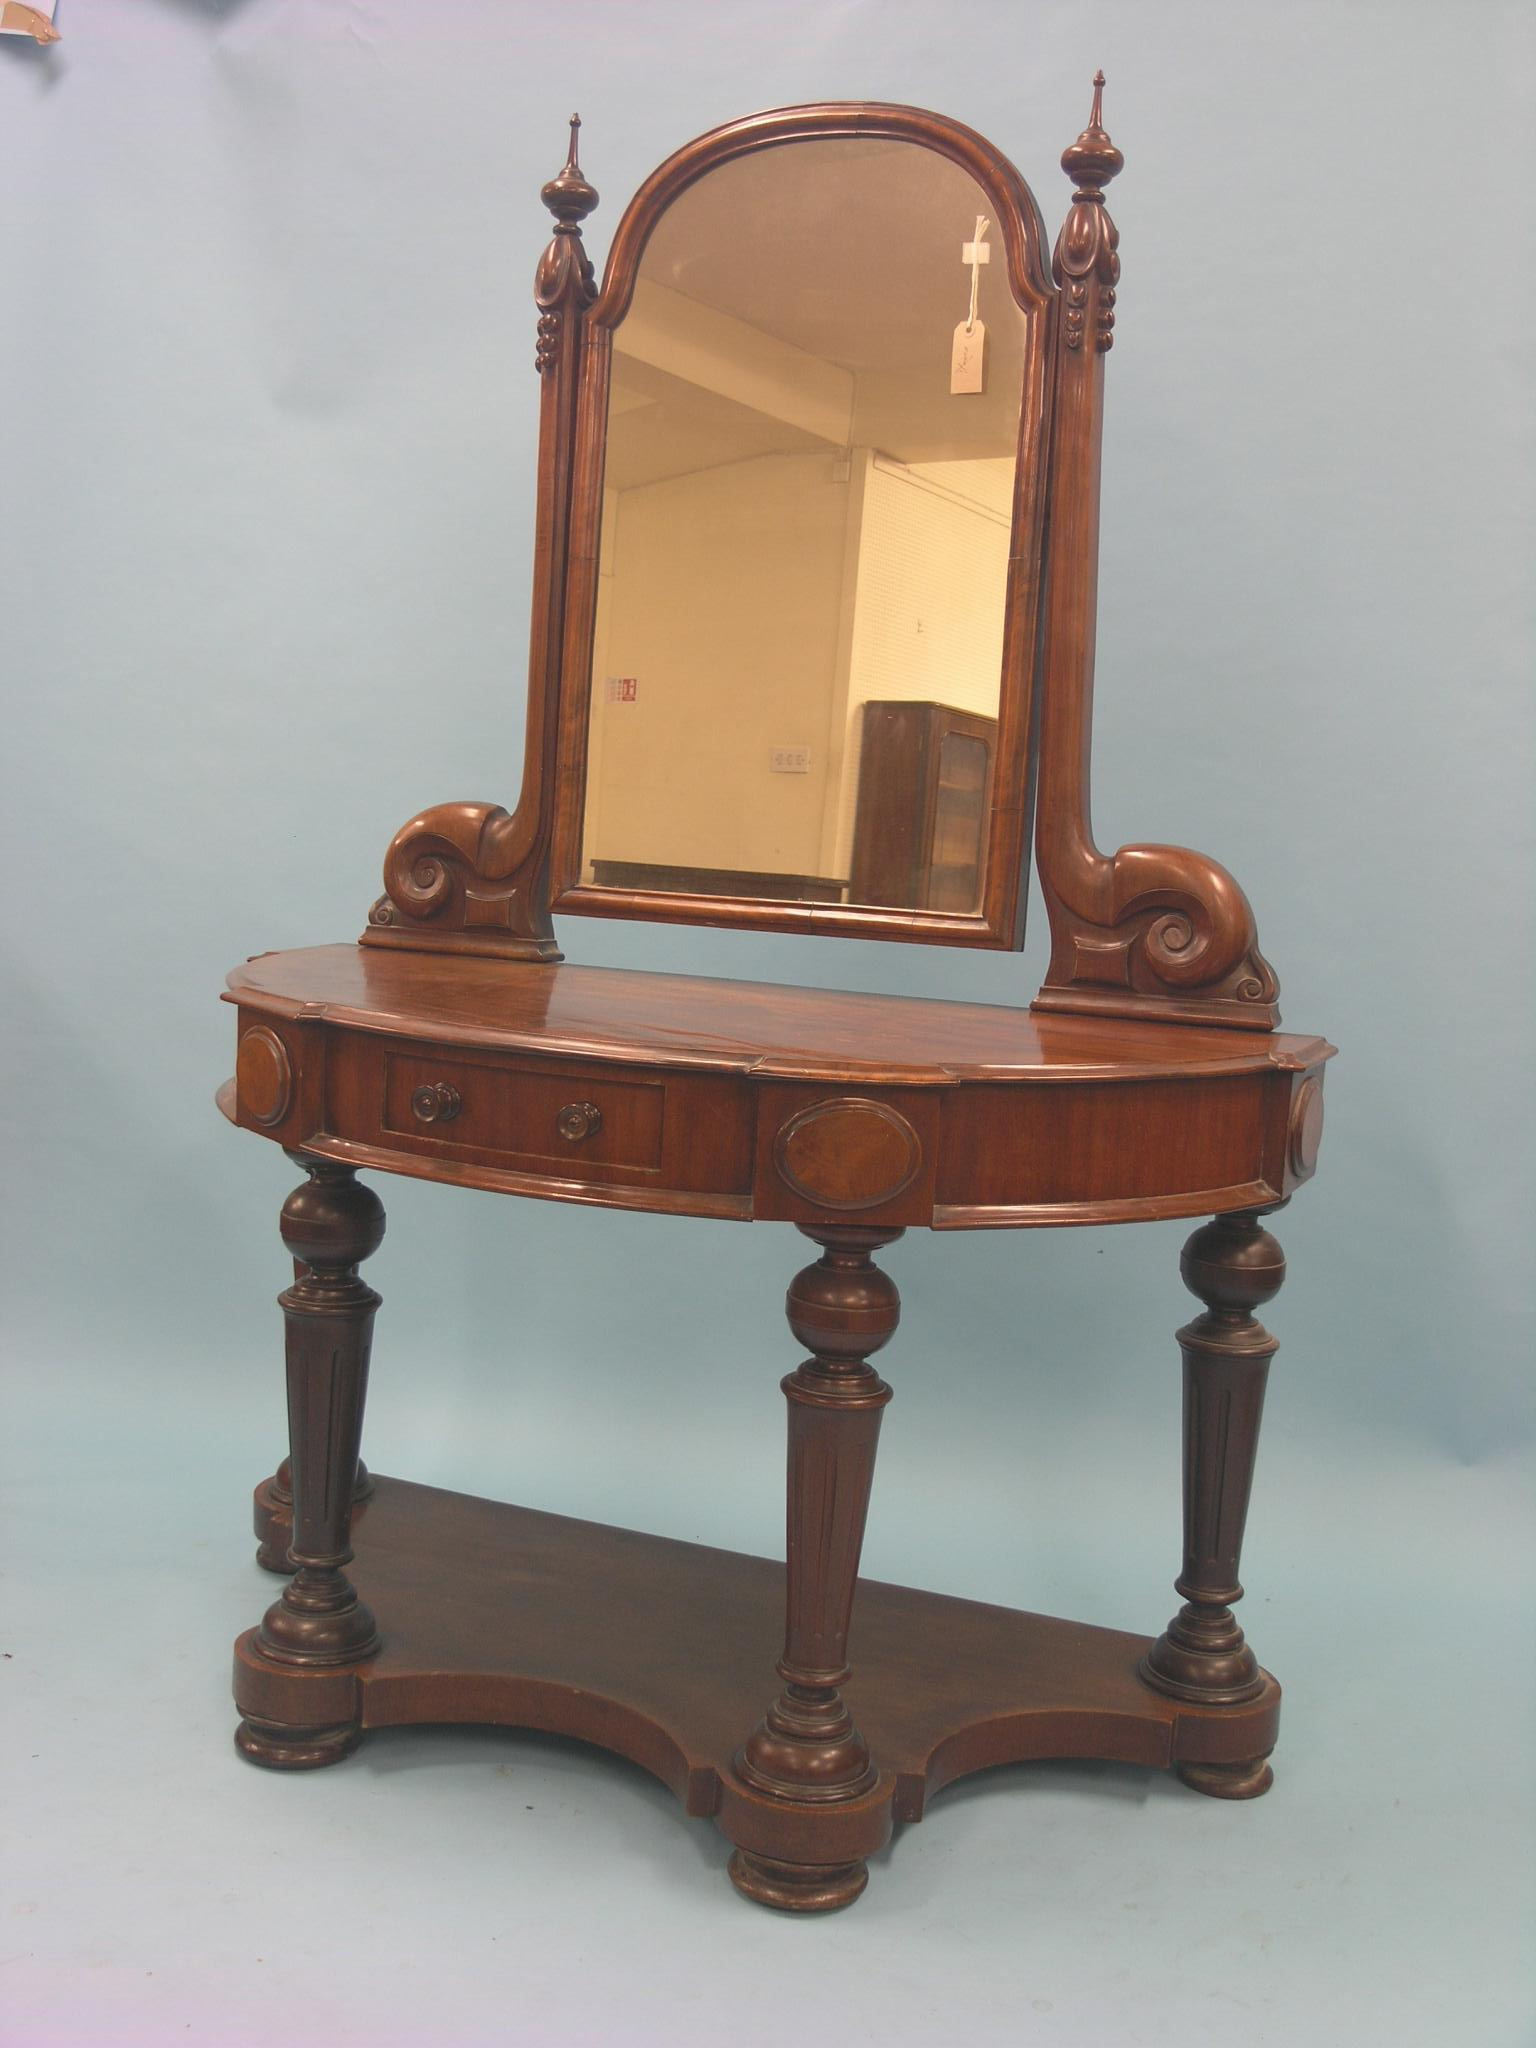 Victorian dressing table - Lot 88 A Victorian Mahogany Dressing Table Duchess Type With Raised Adjustable